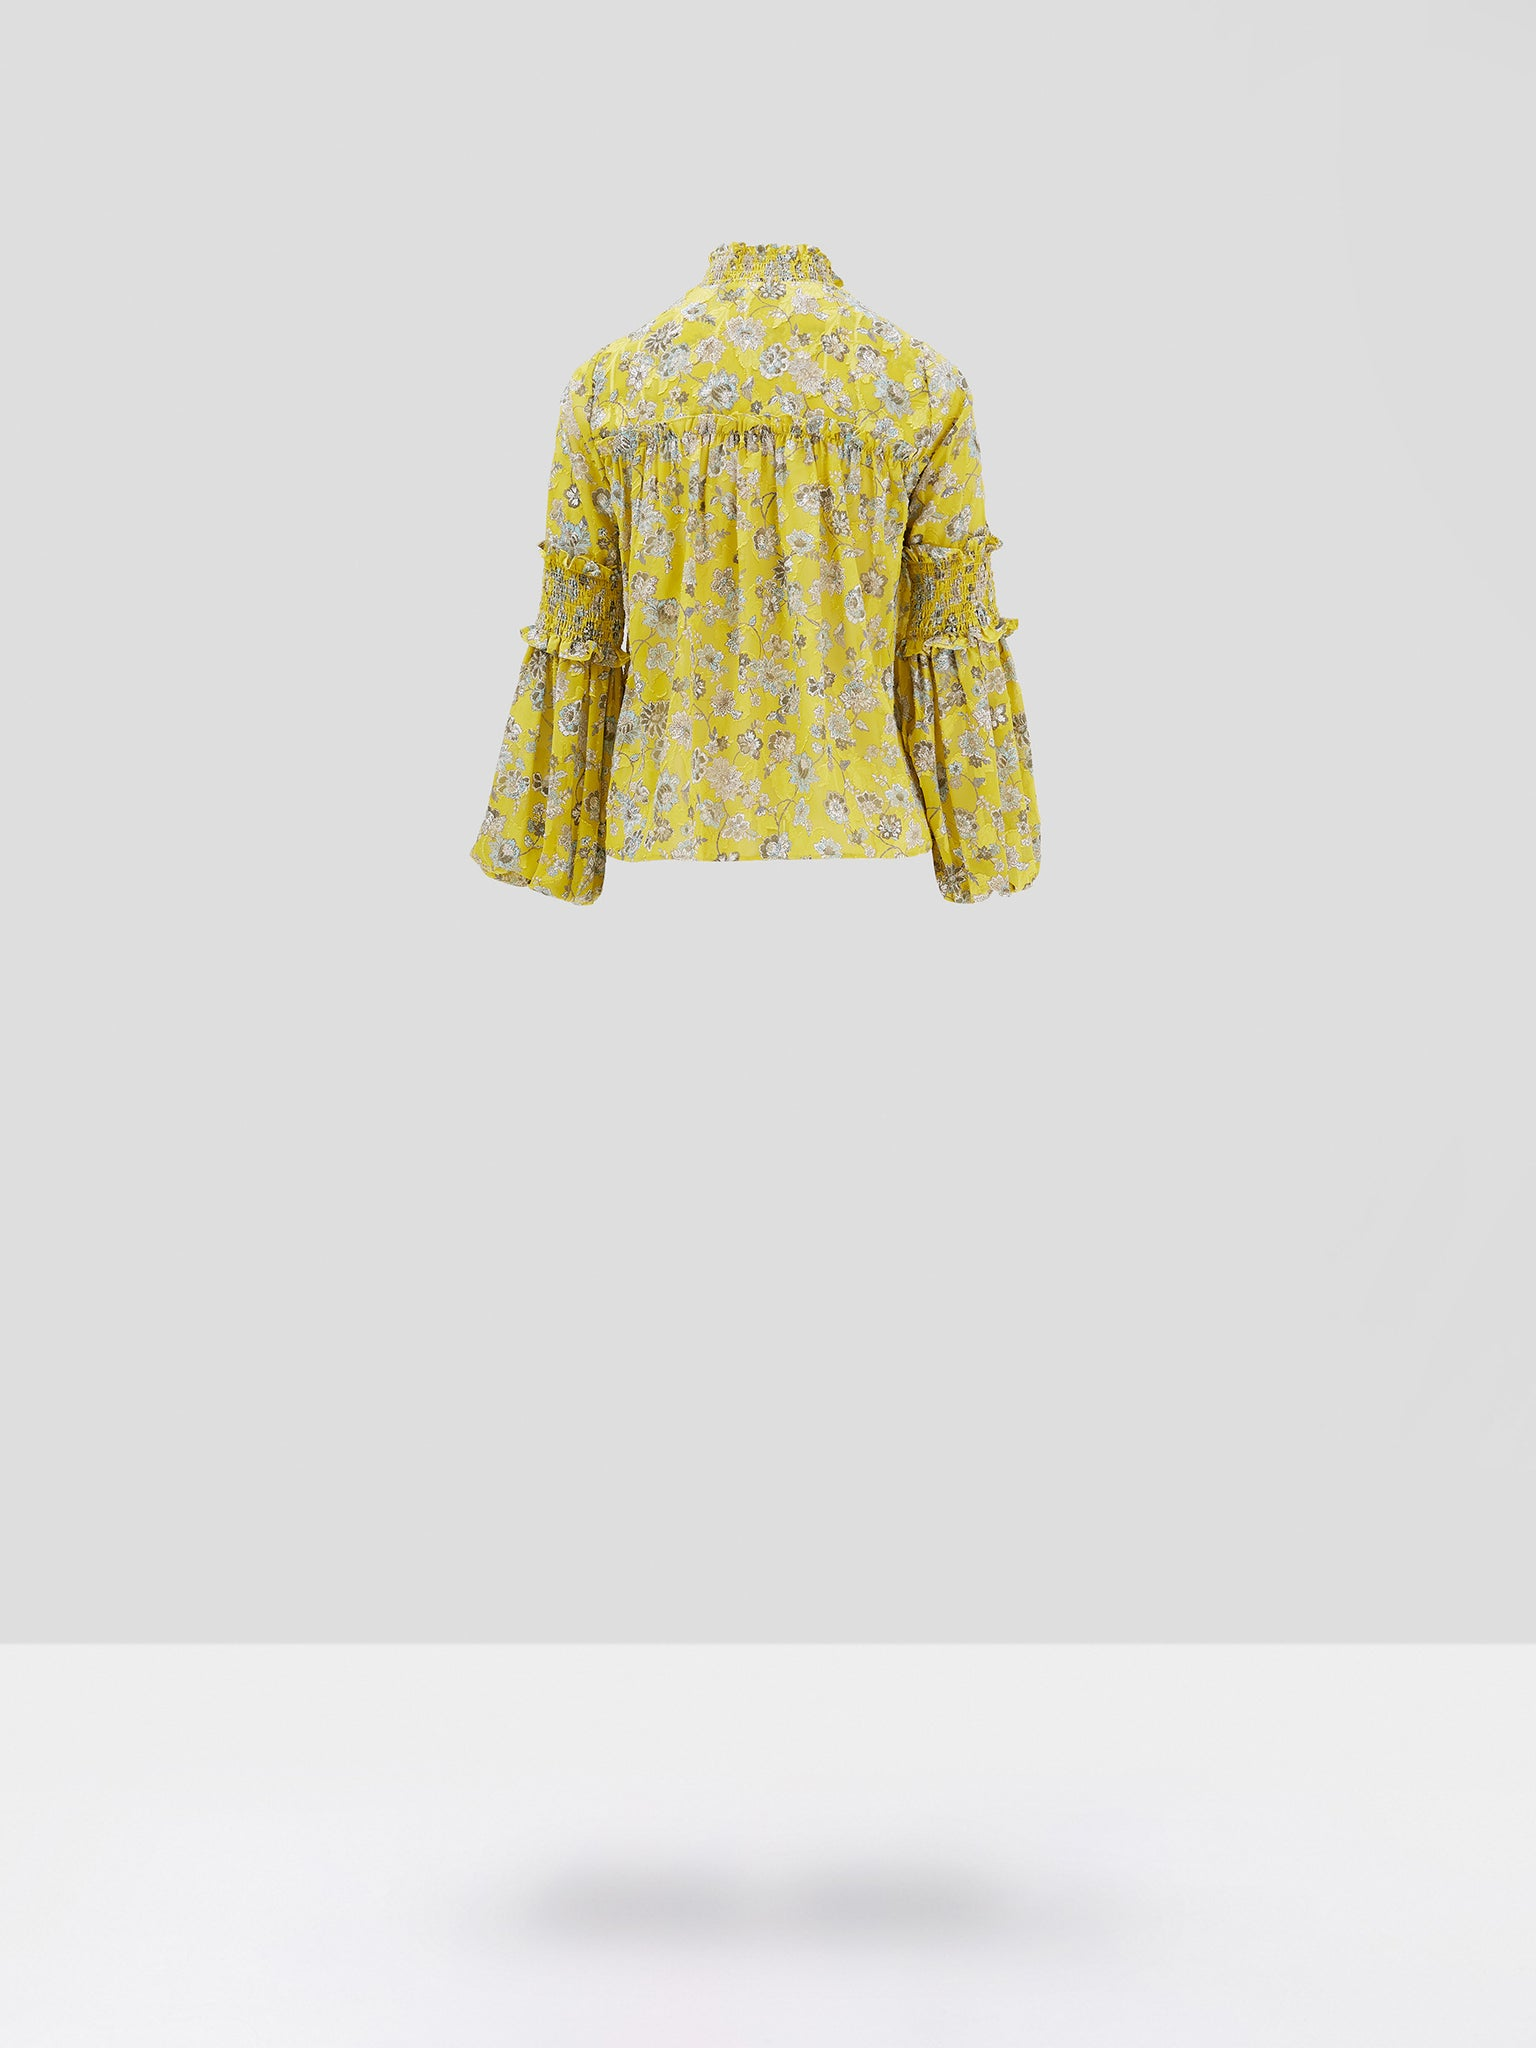 Alexis Zaria Top in Citron Floral  - Rear View